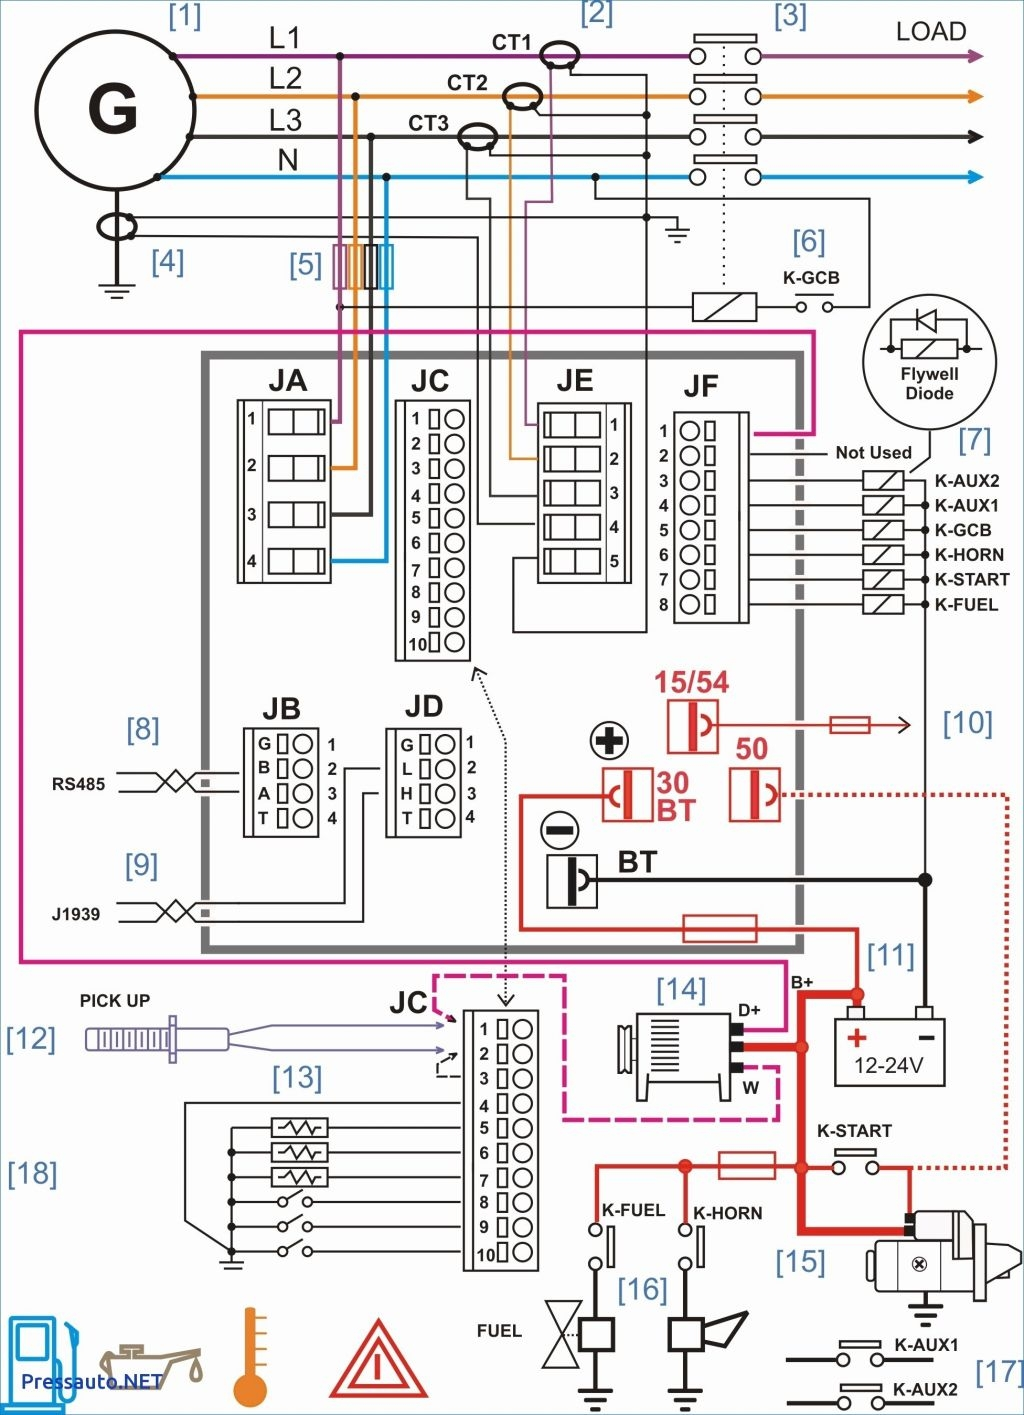 200 amp automatic transfer switch wiring diagram free